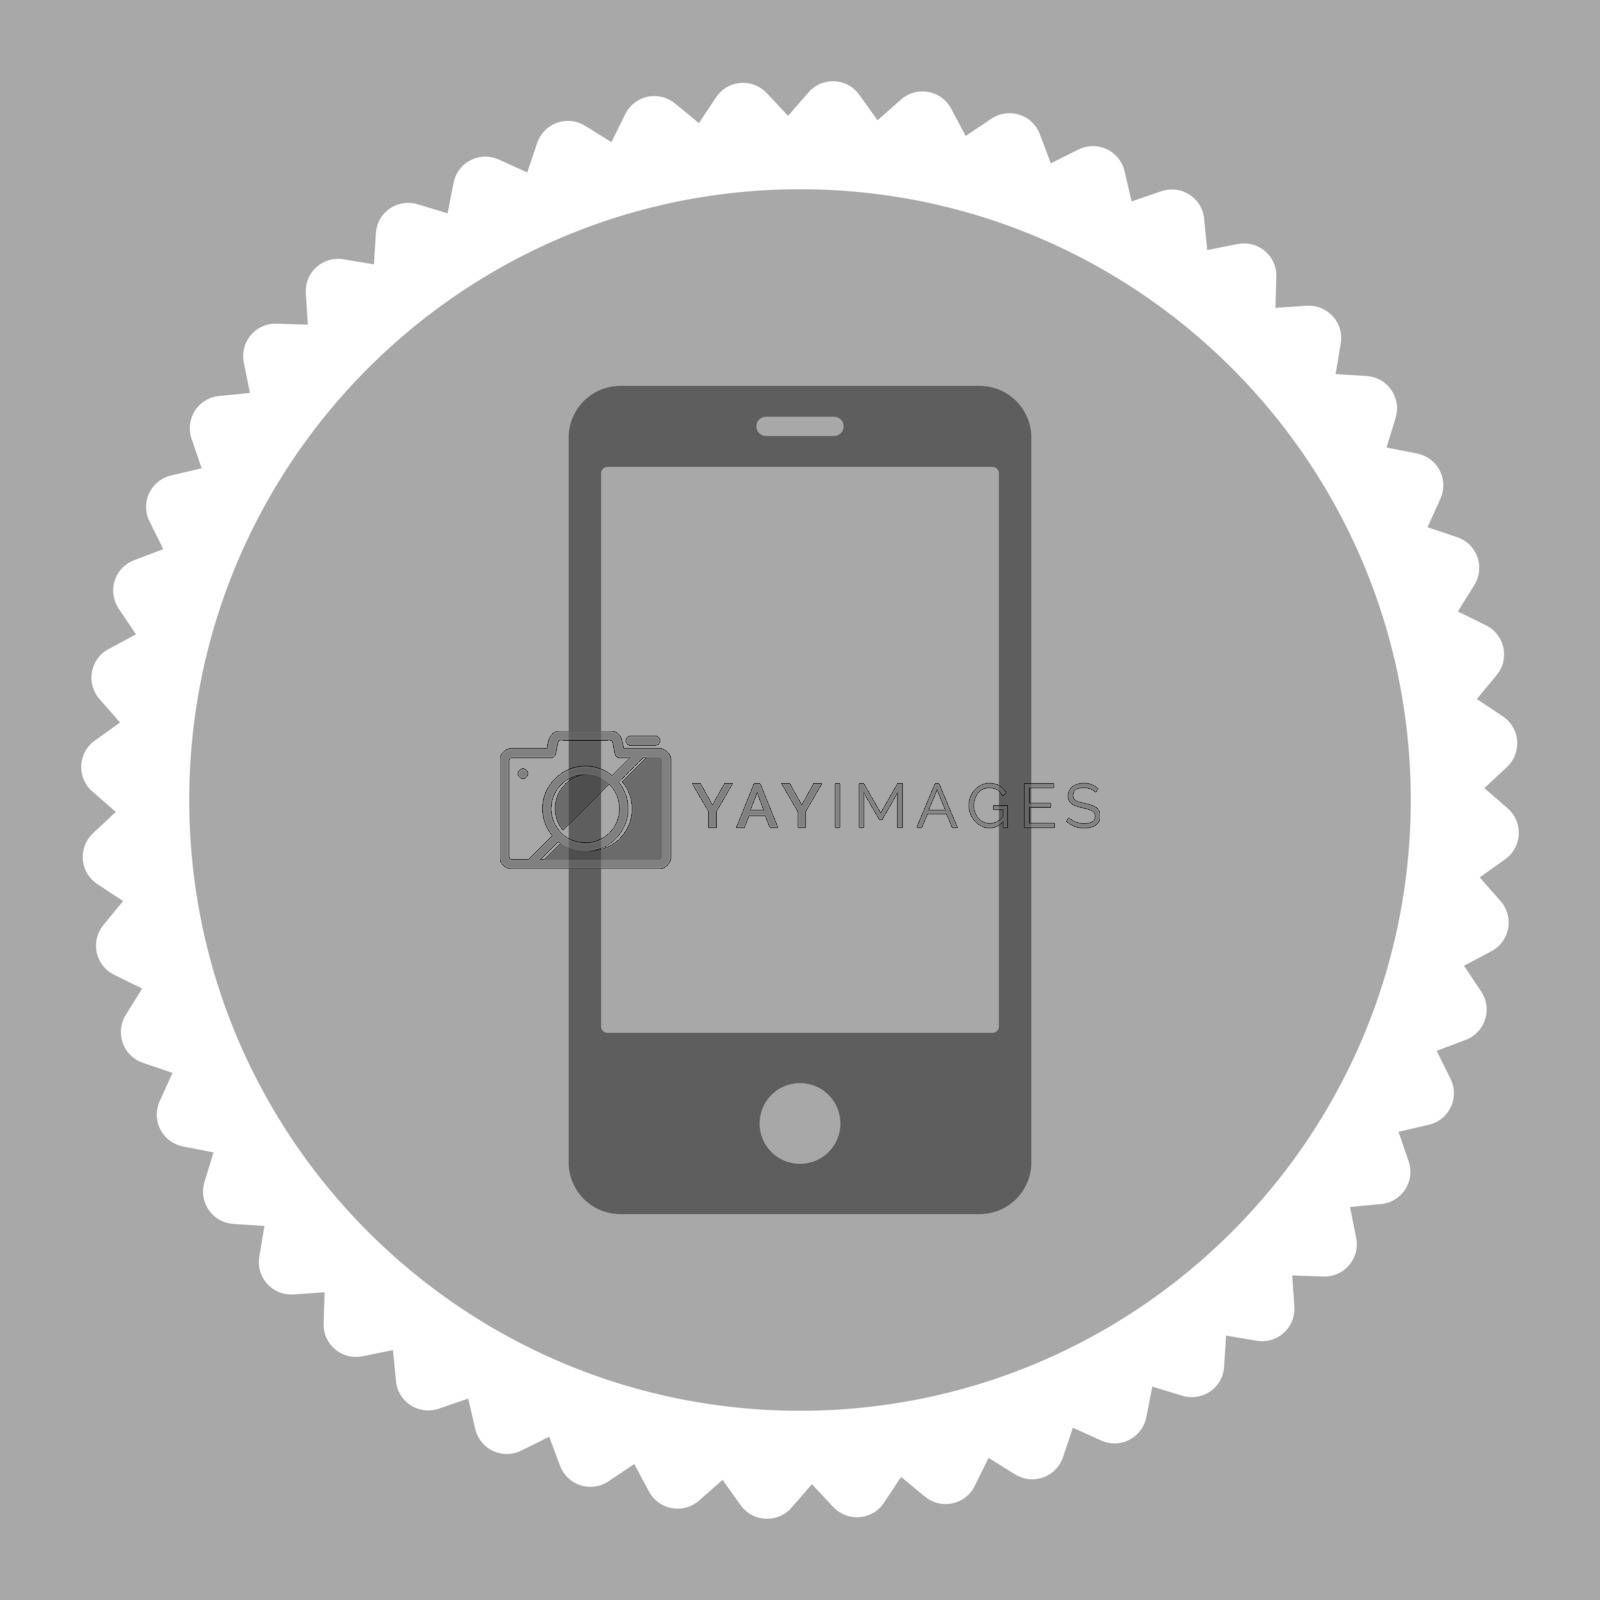 Smartphone flat dark gray and white colors round stamp icon by Aha-Soft